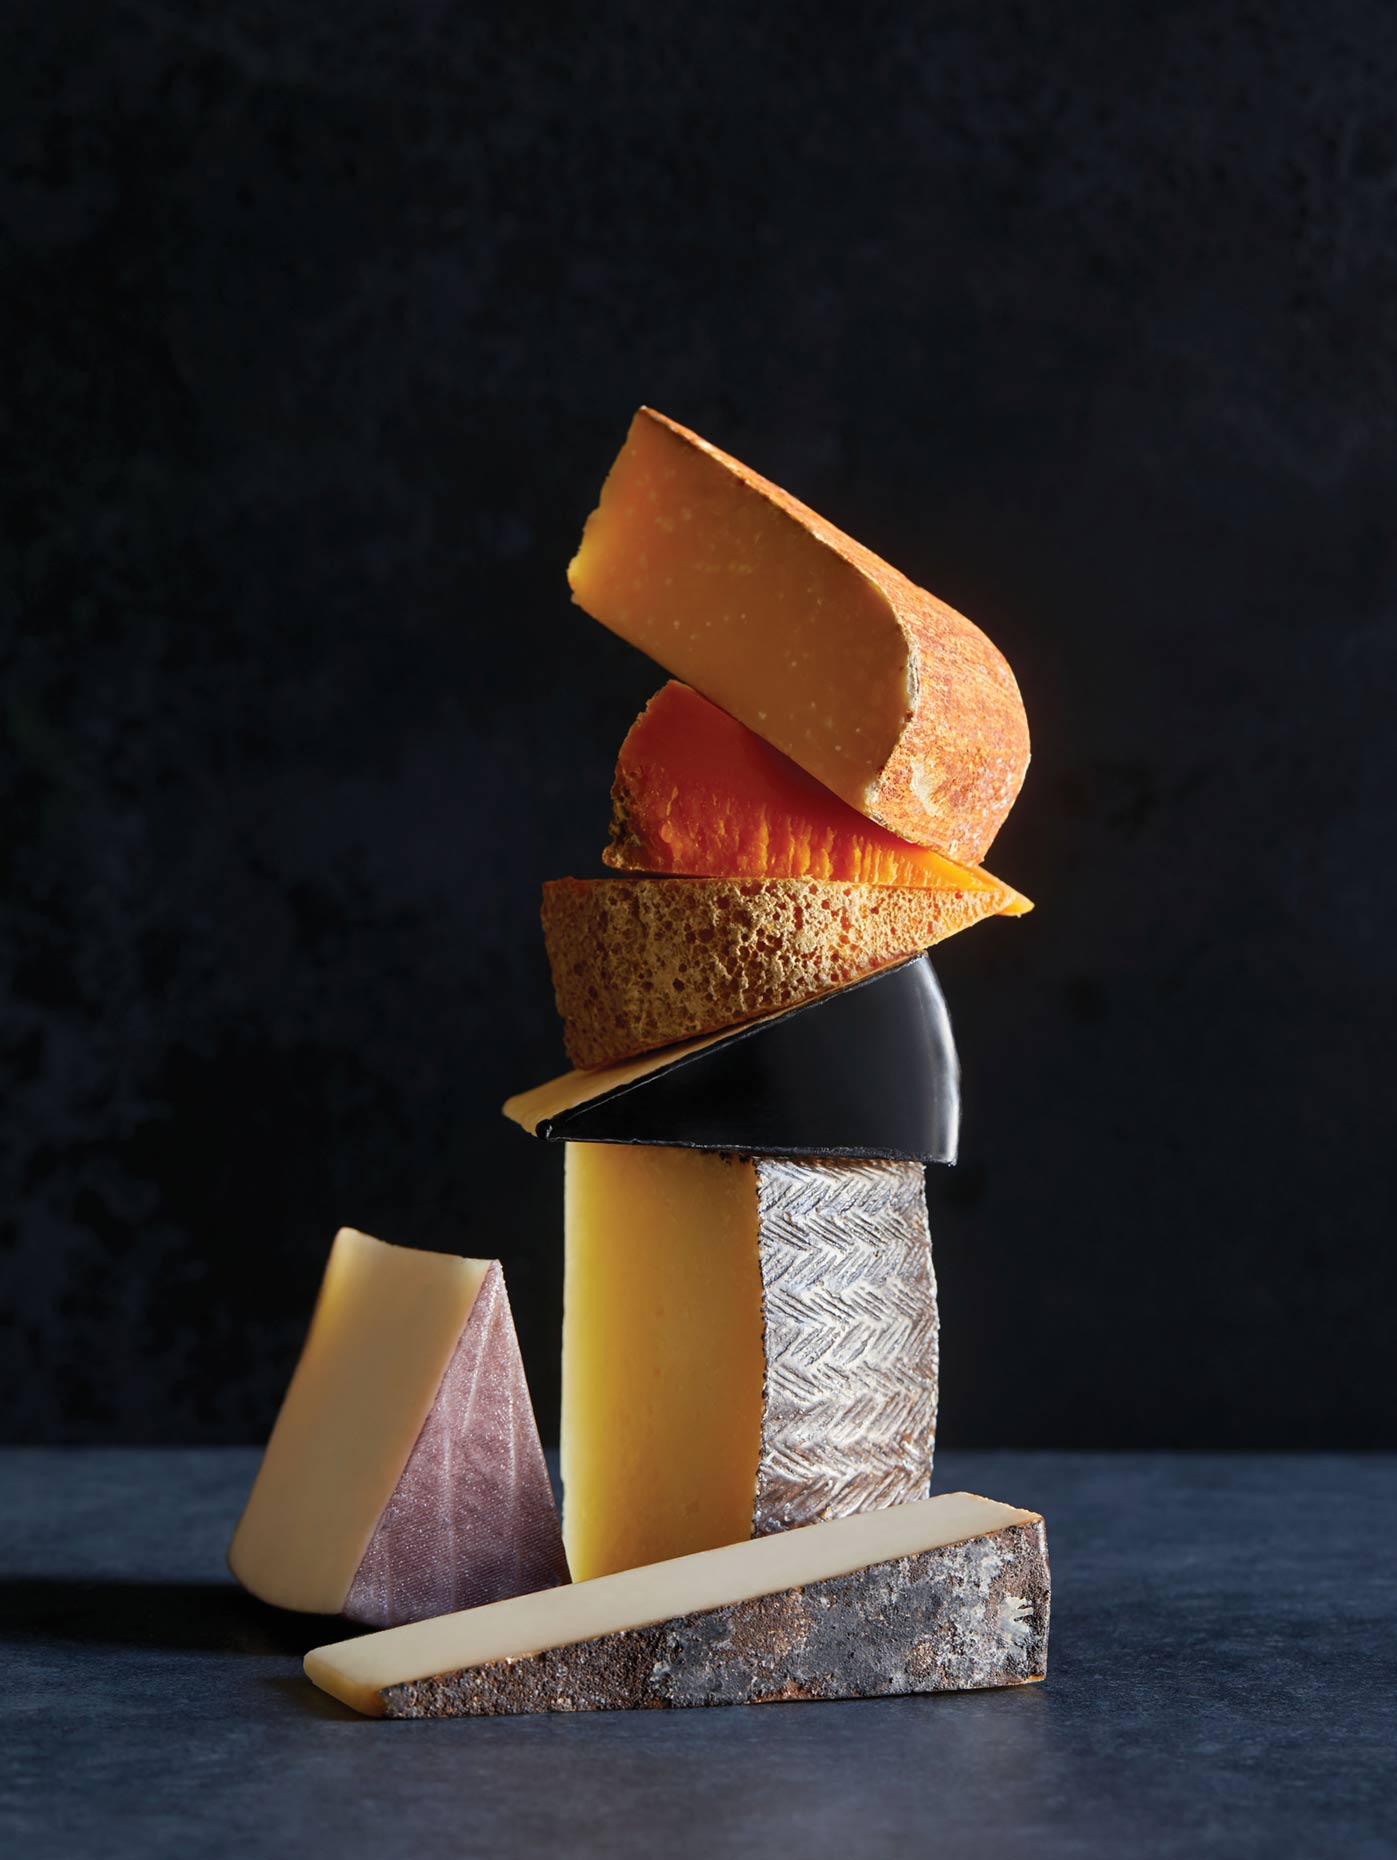 Best photographer in Los Angeles captures an image of Cheese